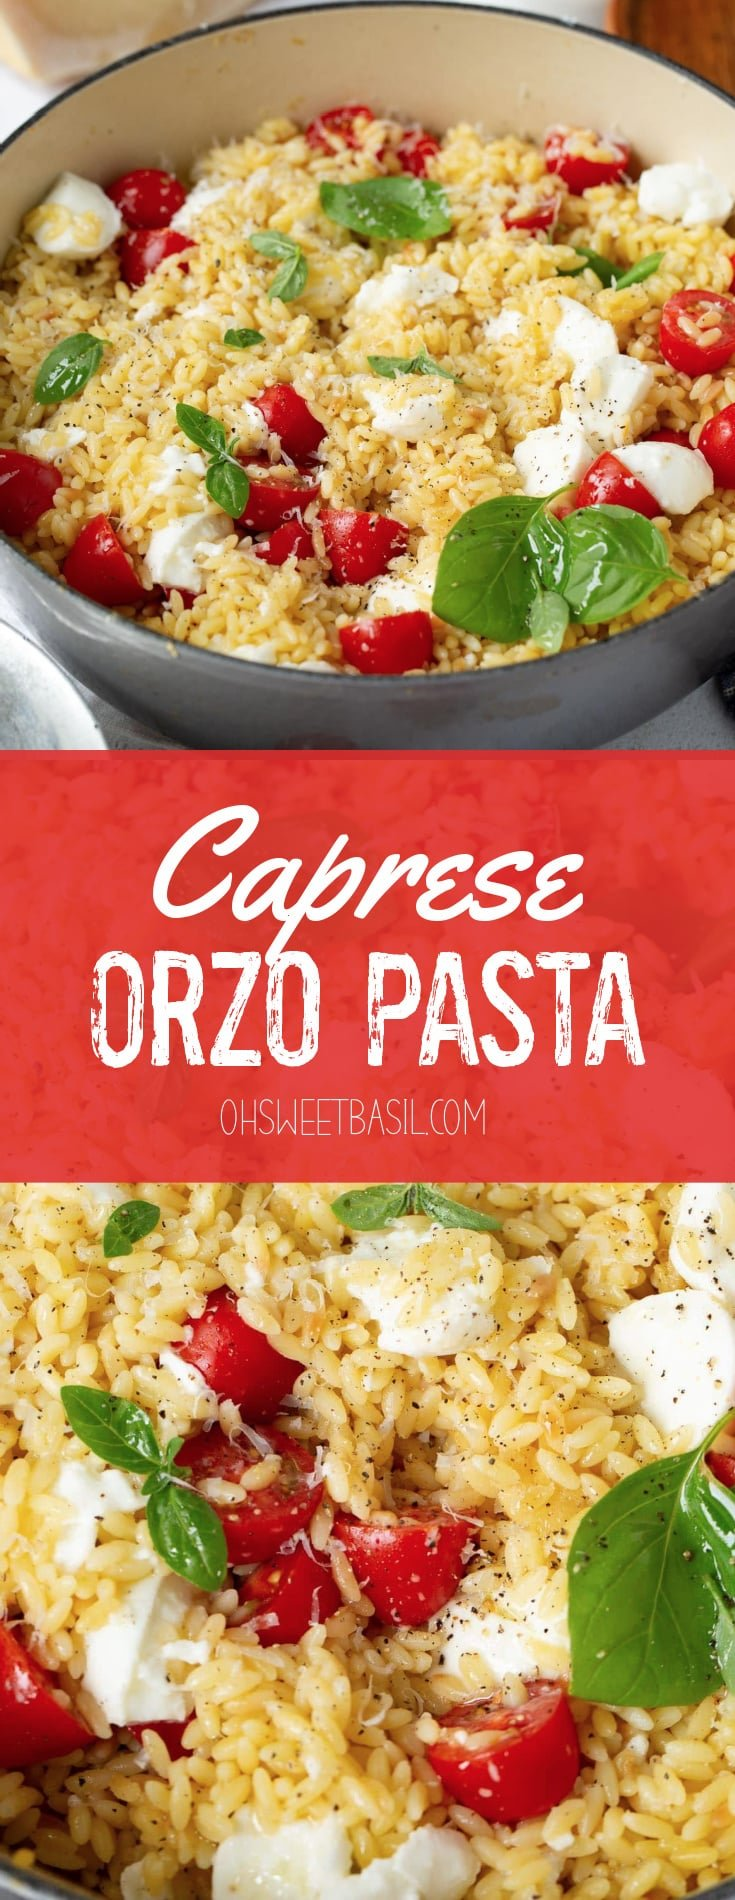 A serving bowl of orzo caprese salad. It is loaded with tomatoes, fresh basil and mozzarella cheese. Parmesan cheese, salt, and tomatoes are next to the bowl of orzo.